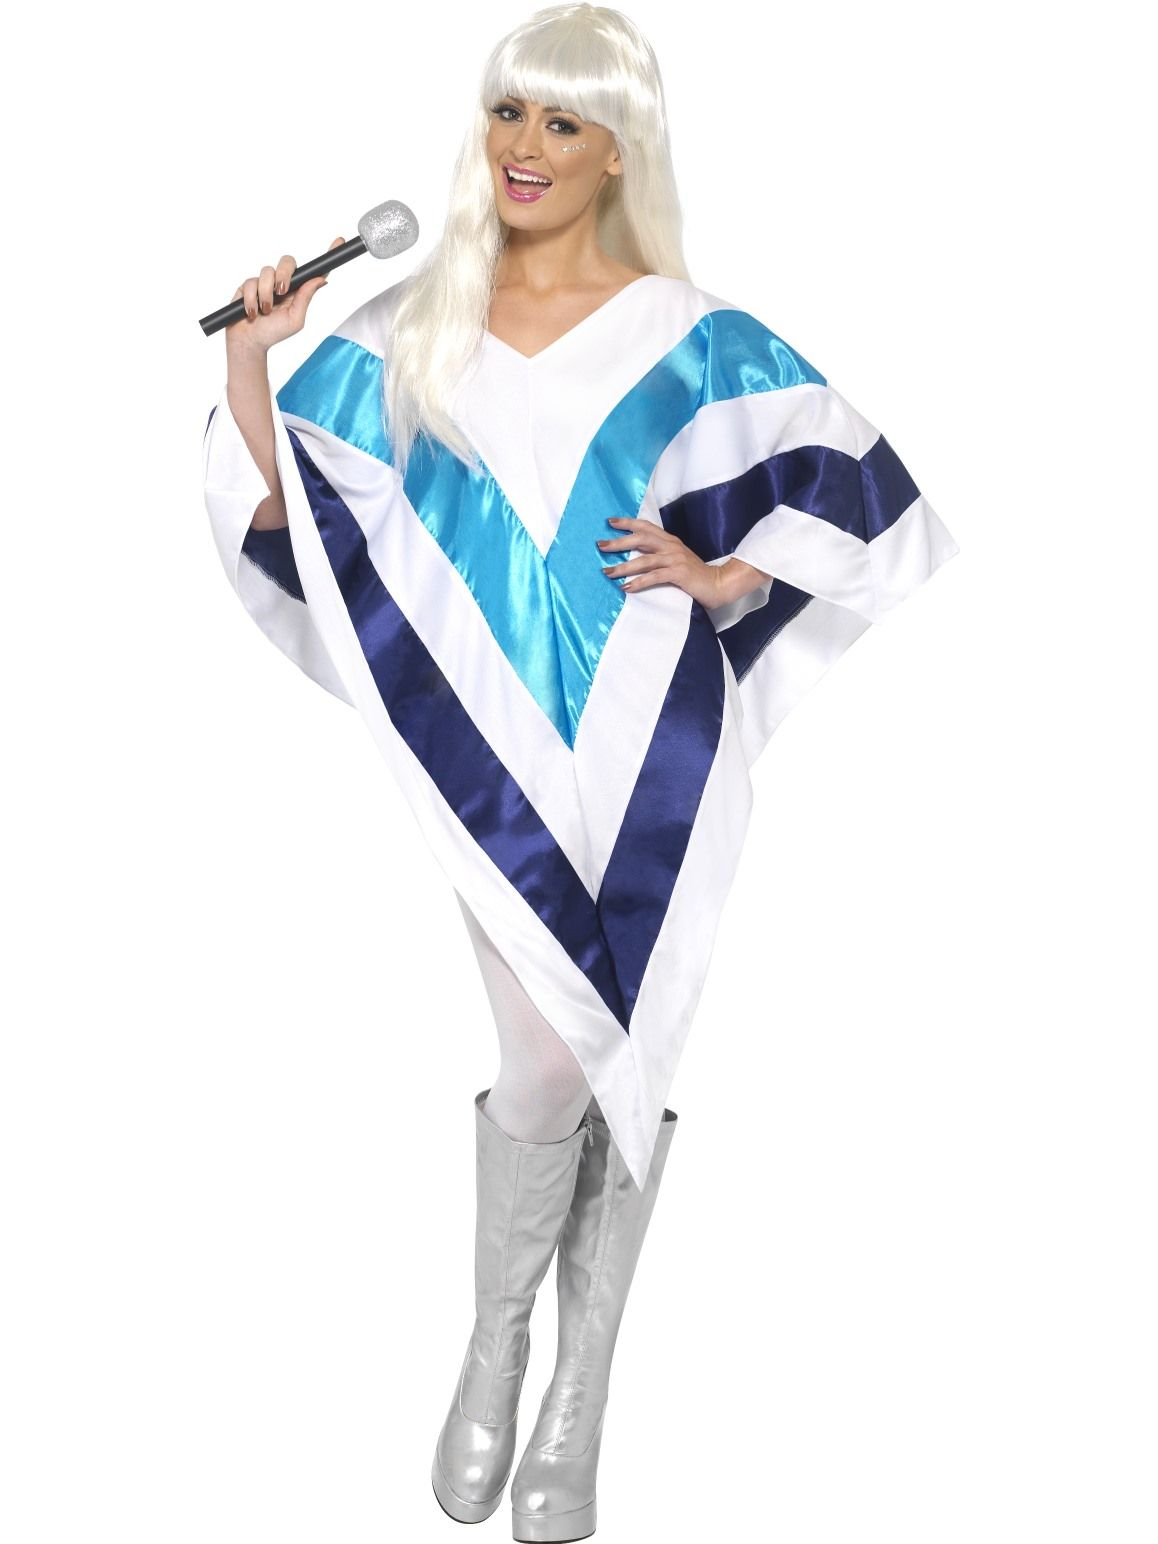 Abba Poncho 70s Costume - Buy